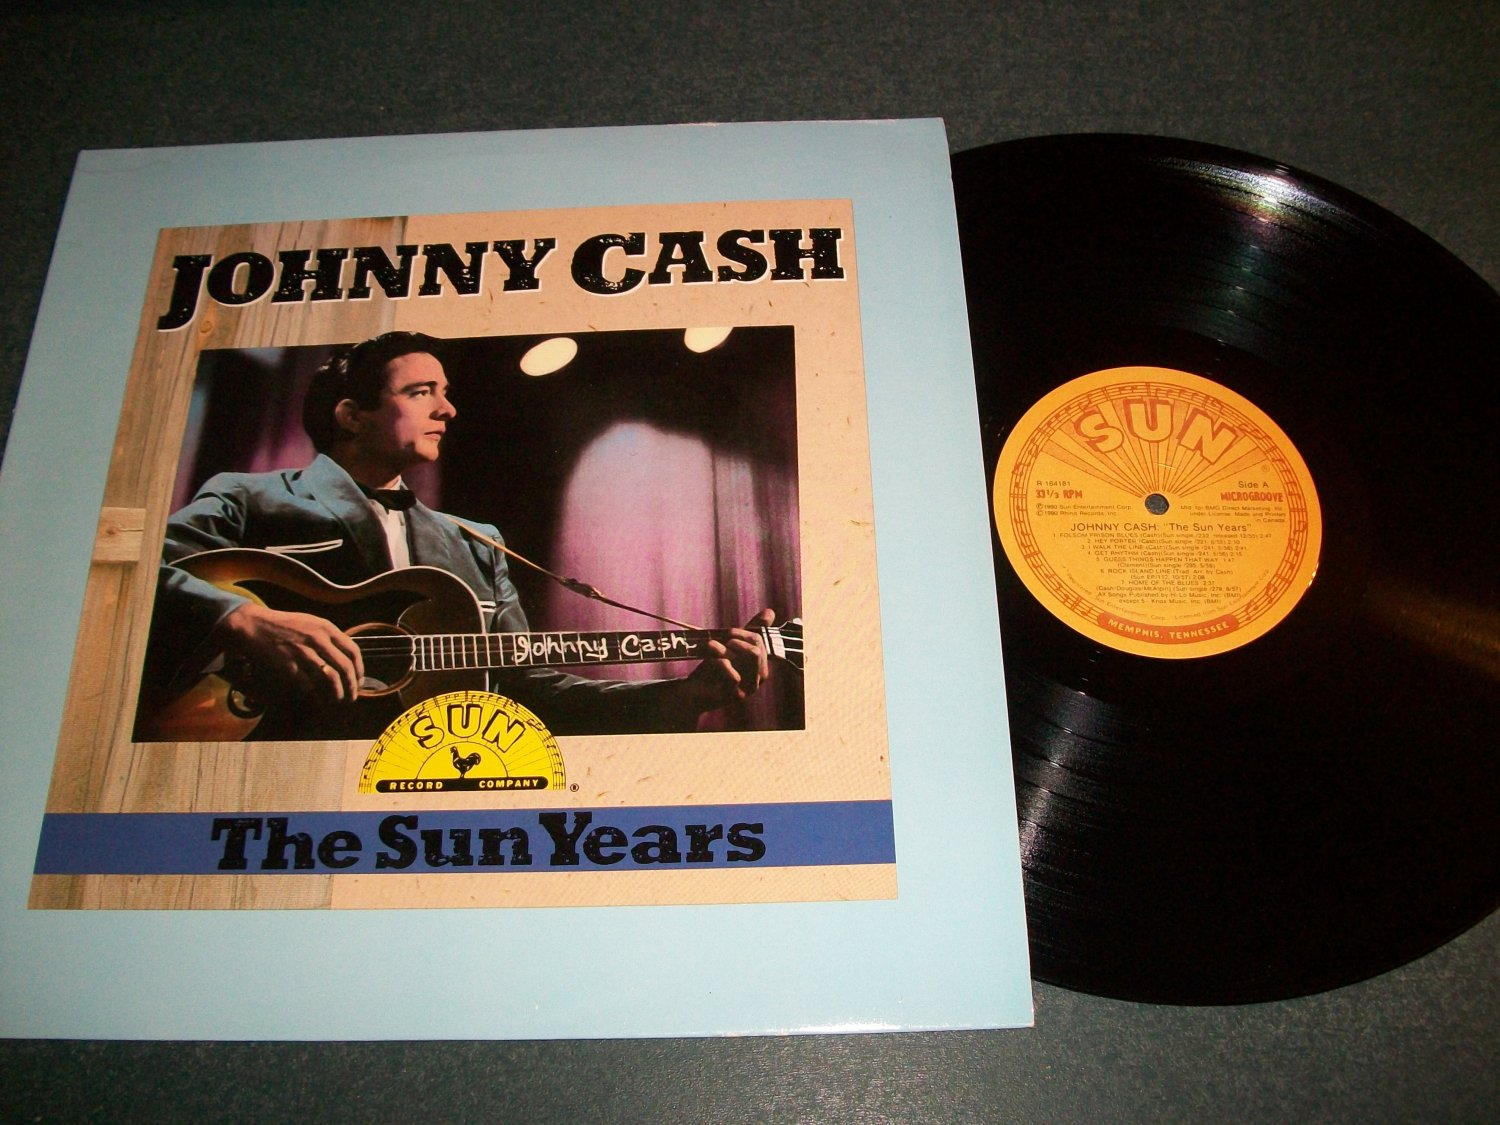 Johnny Cash - The Sun Years - Record LP